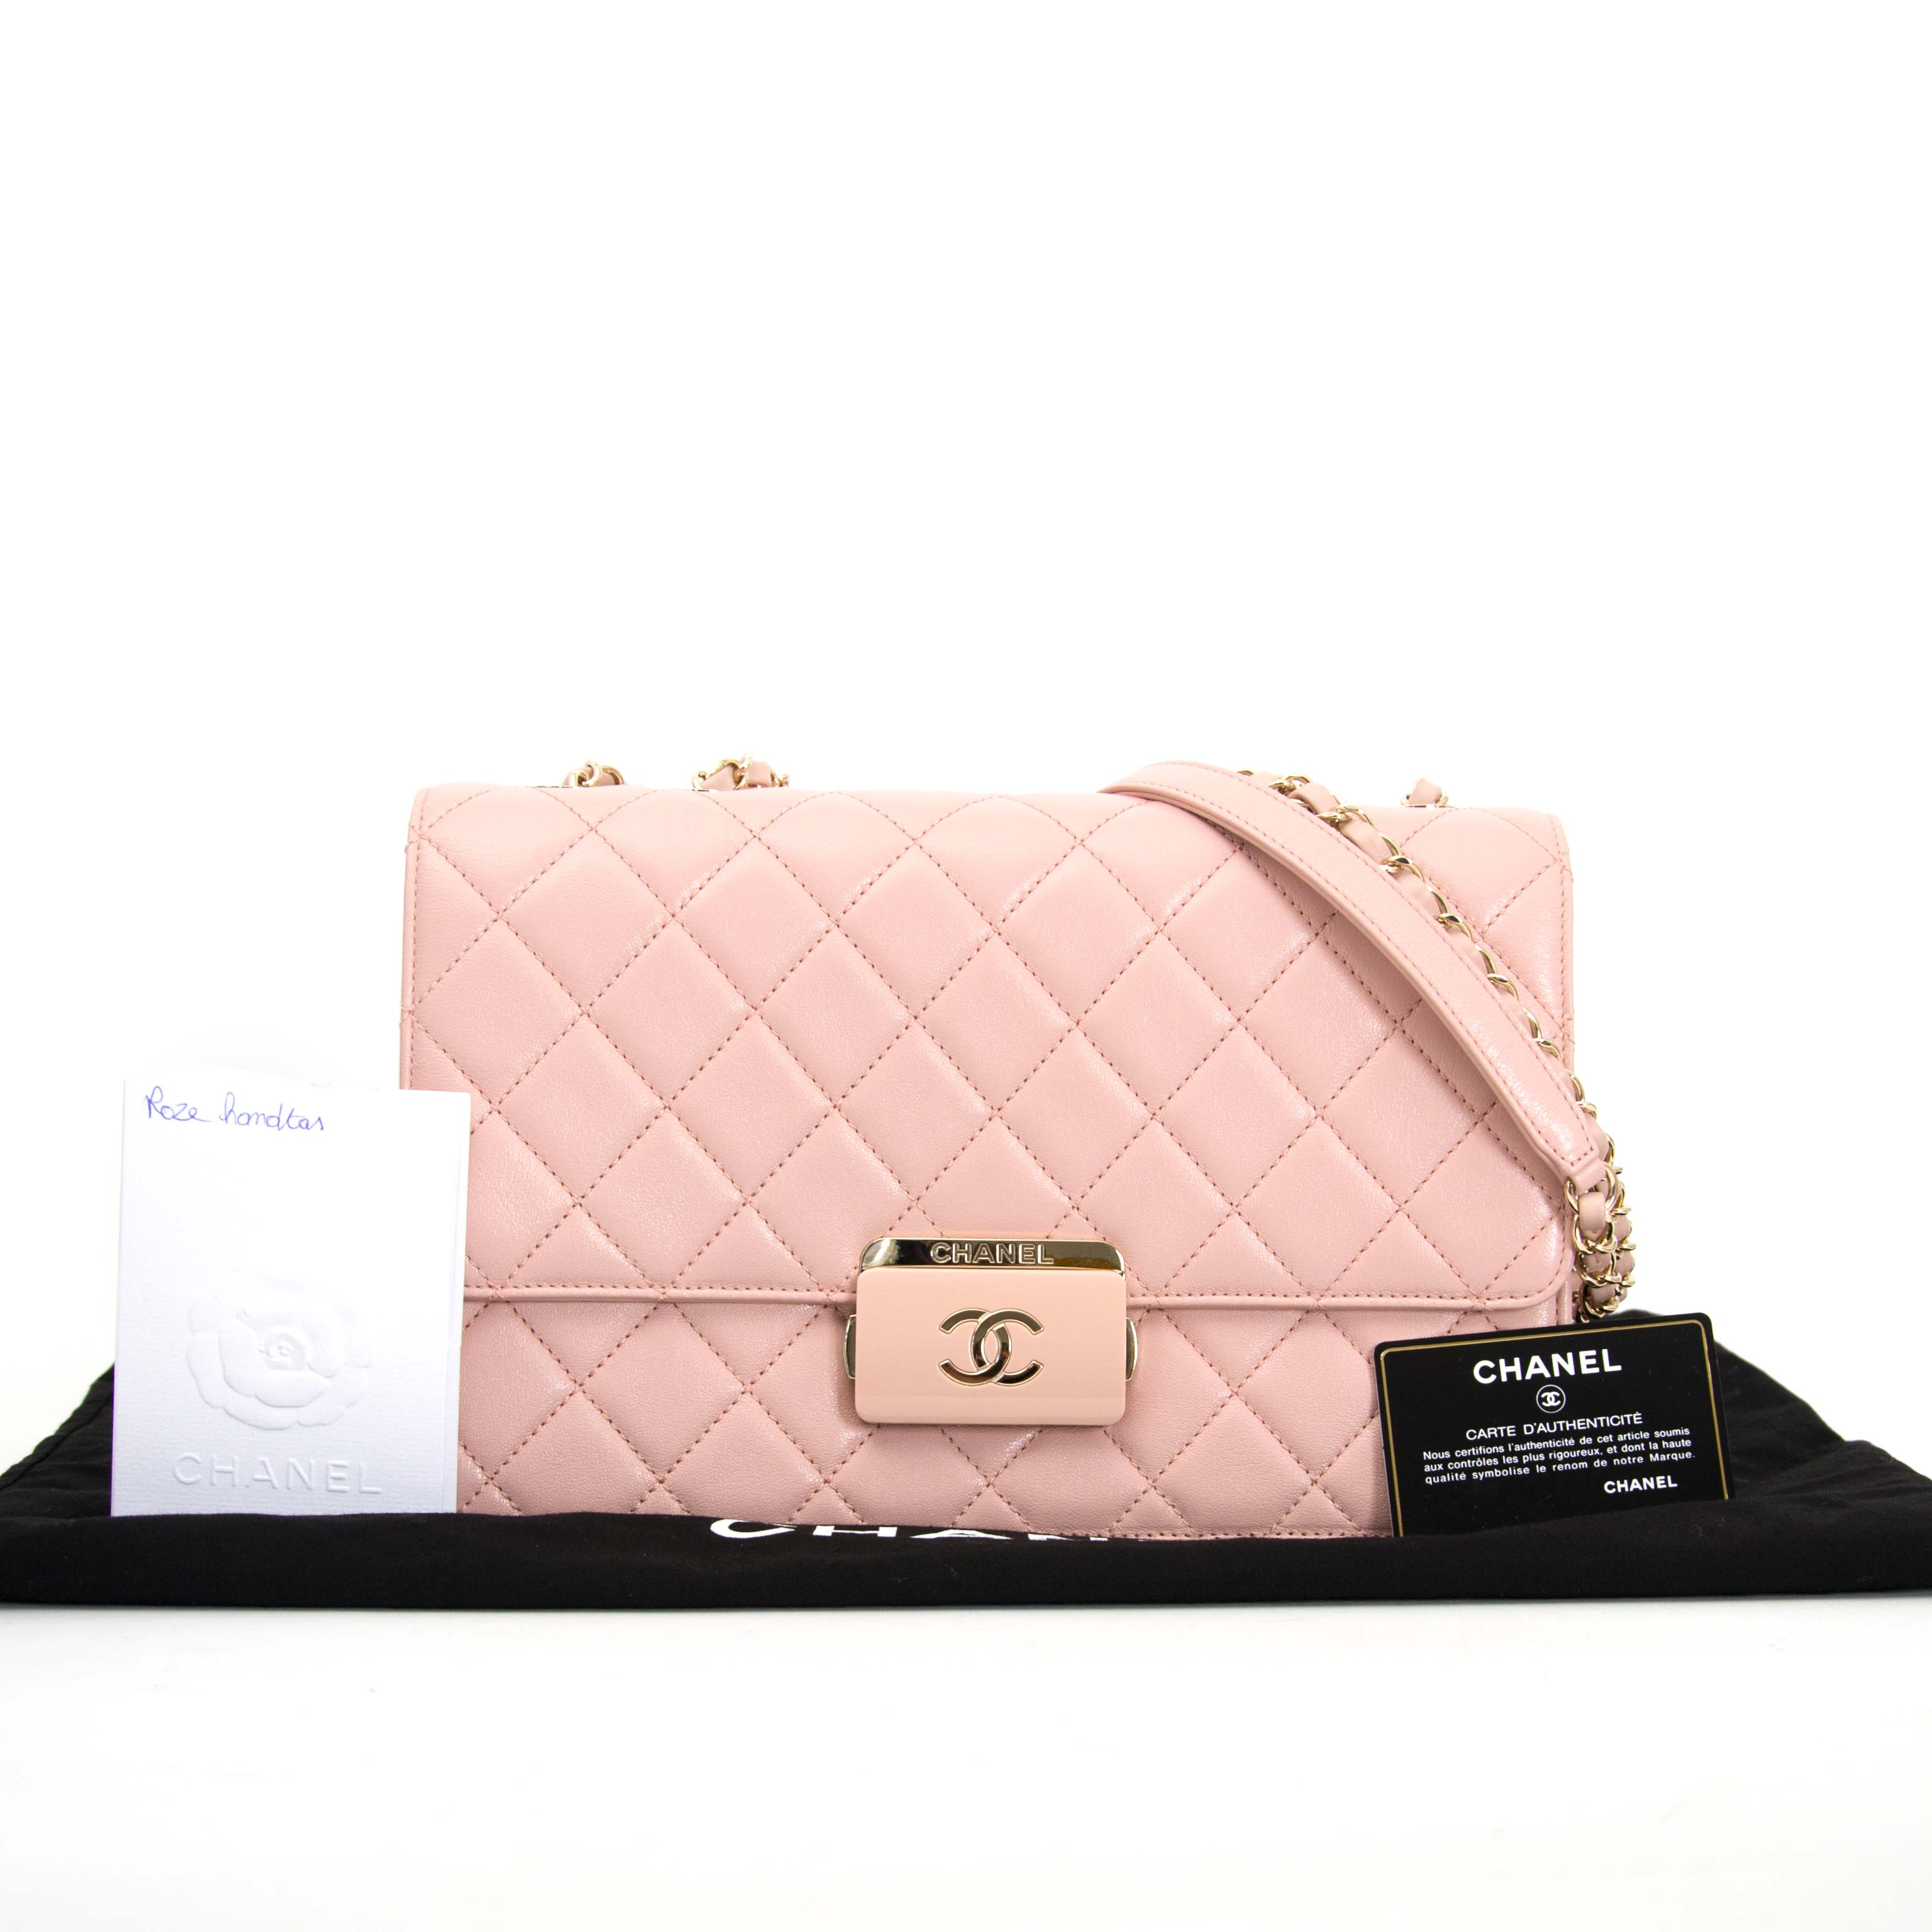 looking for a secondhand Chanel Pink Sheepskin Flap Bag